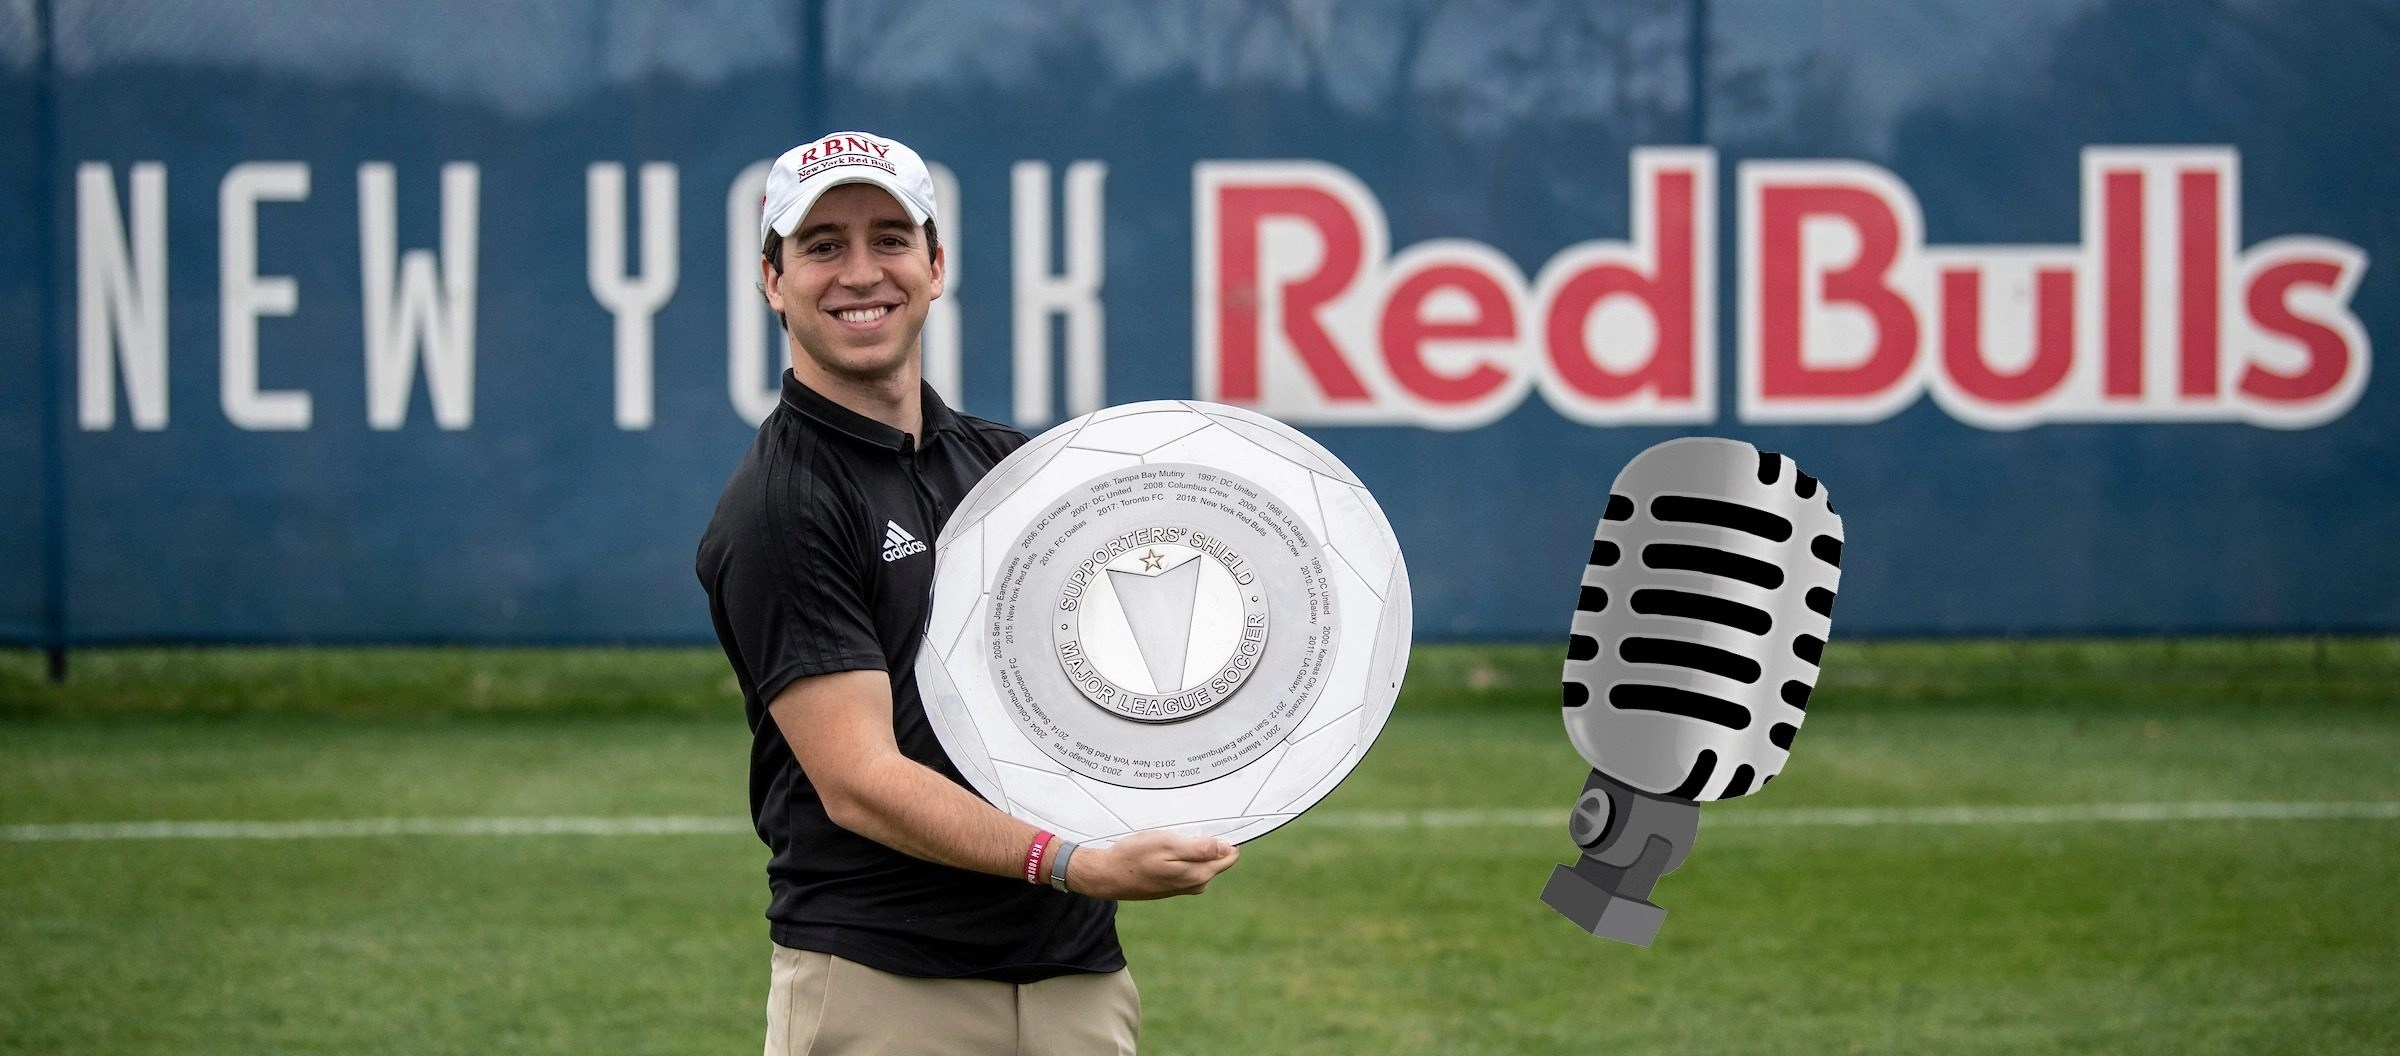 Behind Sport podcast | Andrew Vazzano from New York Red Bulls